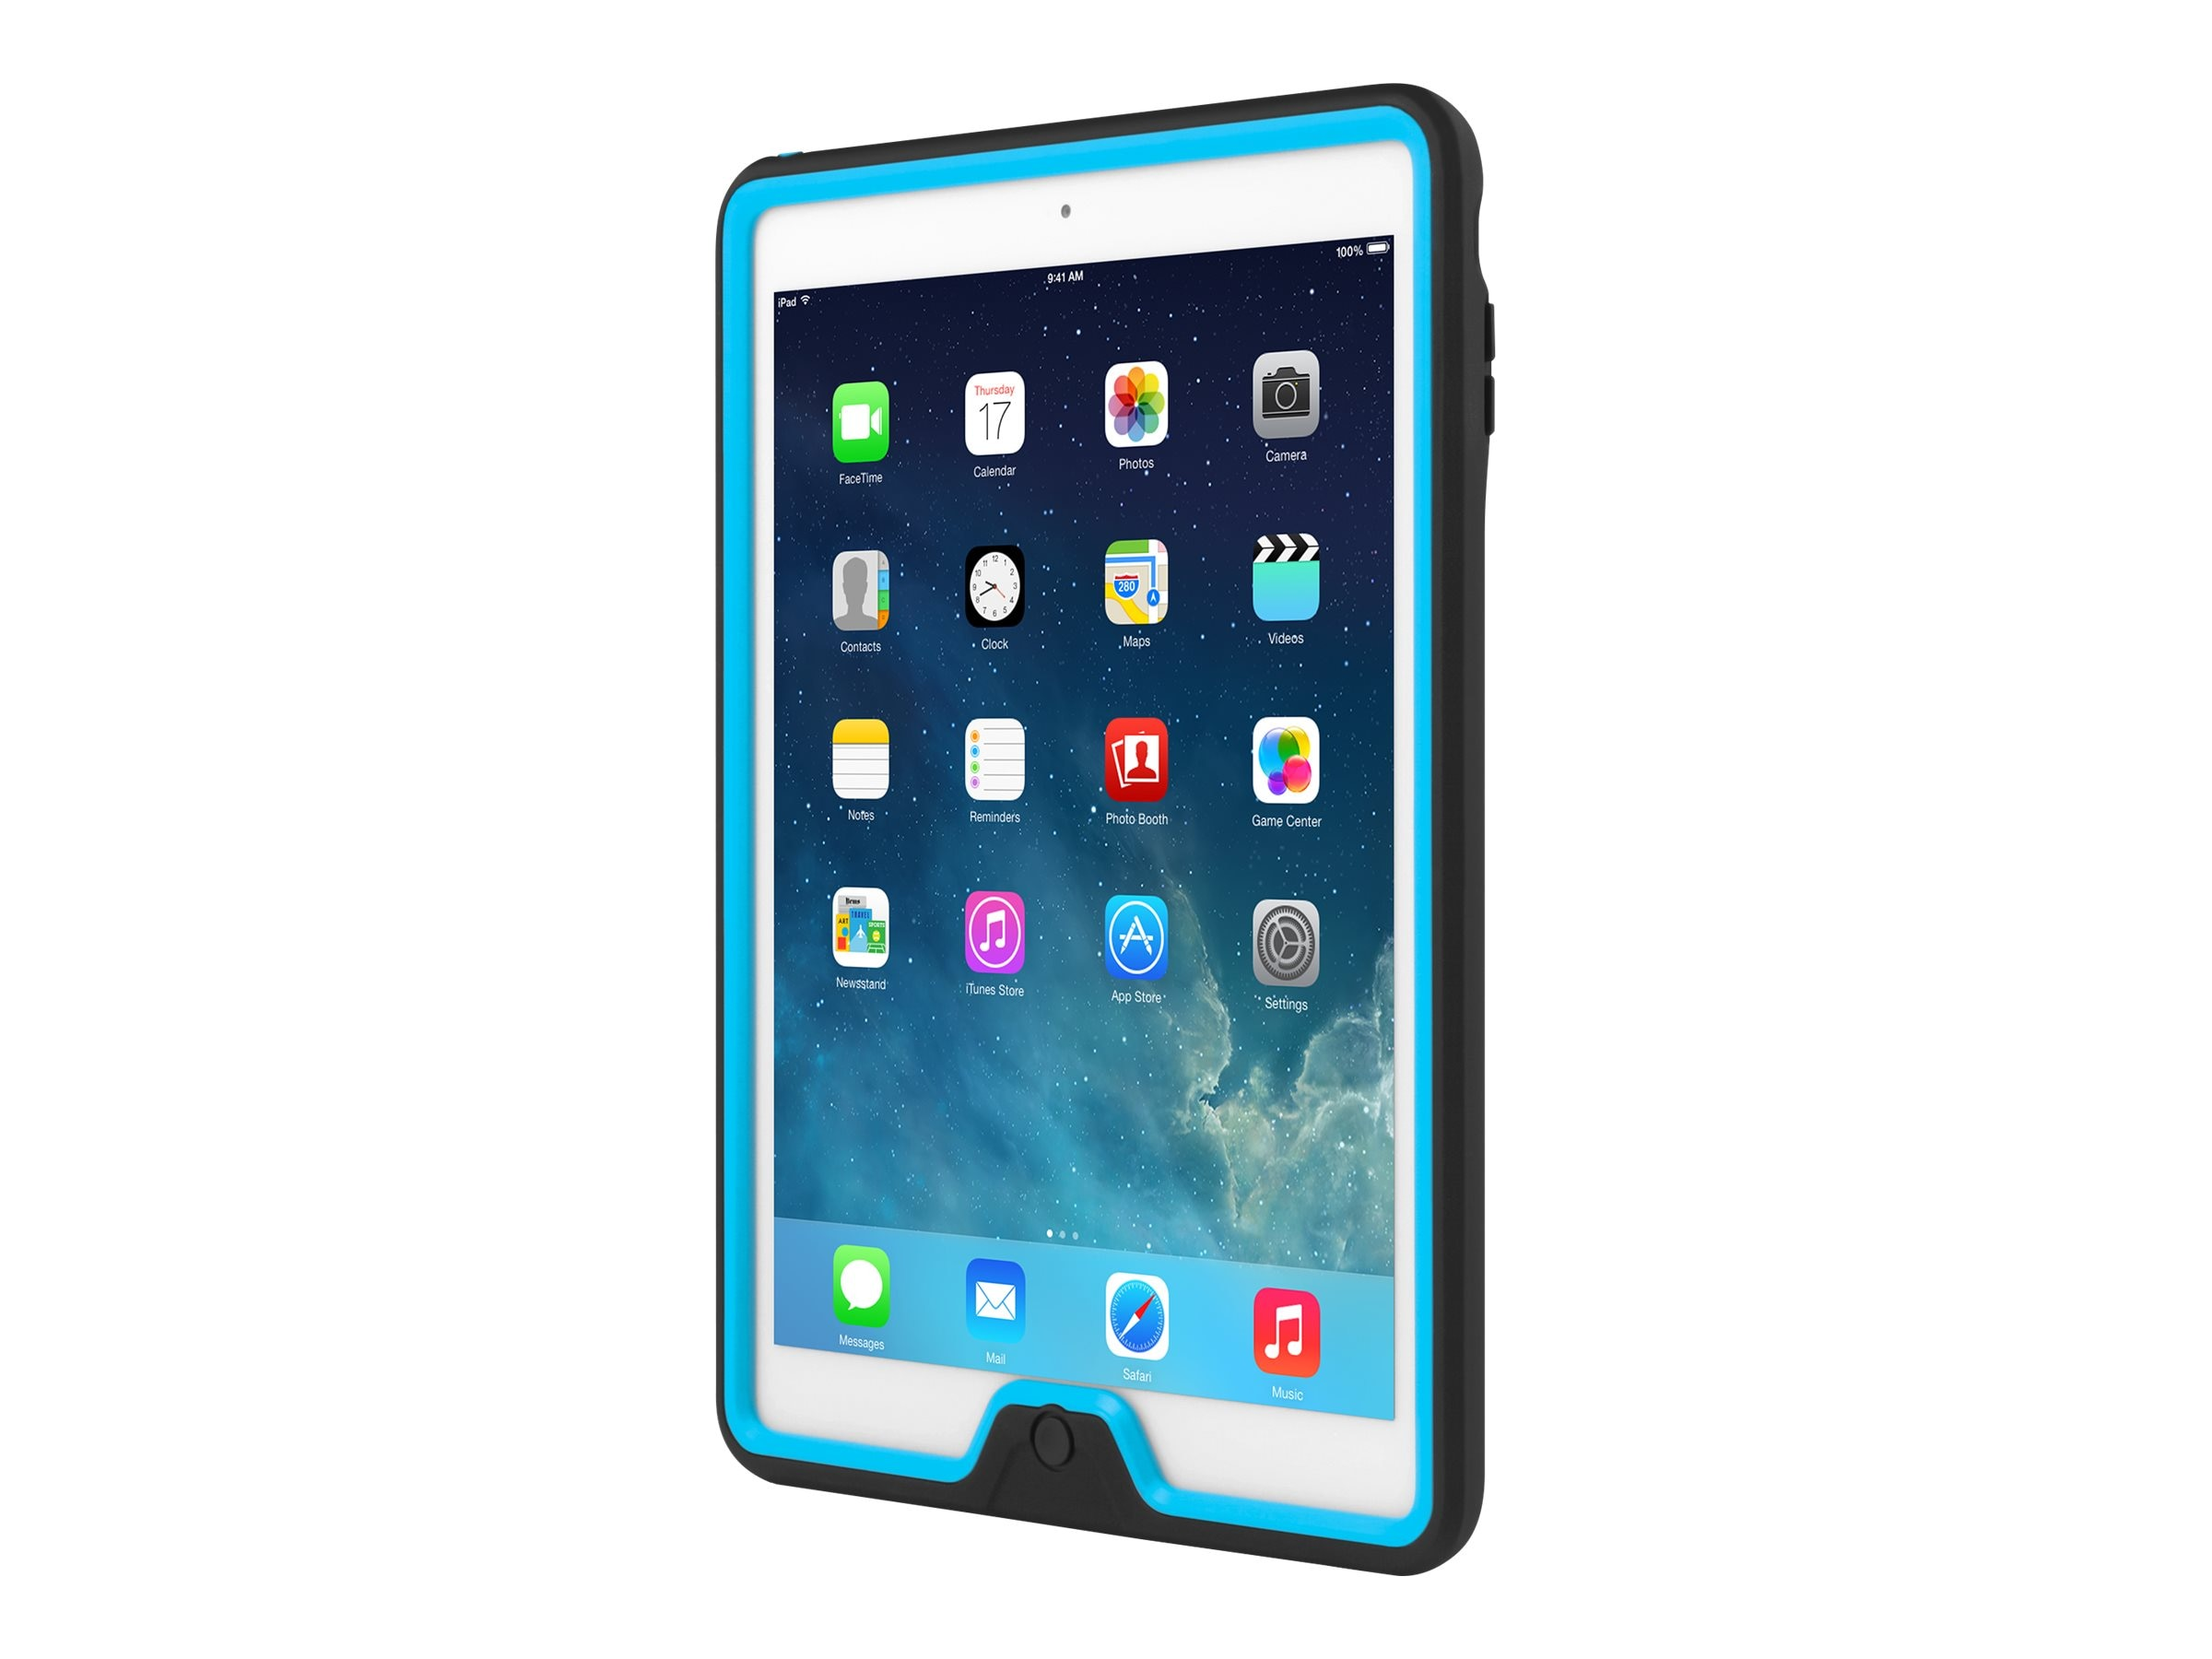 Incipio Capture Ultra-Rugged Case w  Rotating Hand Strap for iPad Air, Black Cyan, IPD-333-BLKCYN, 31216103, Carrying Cases - Tablets & eReaders